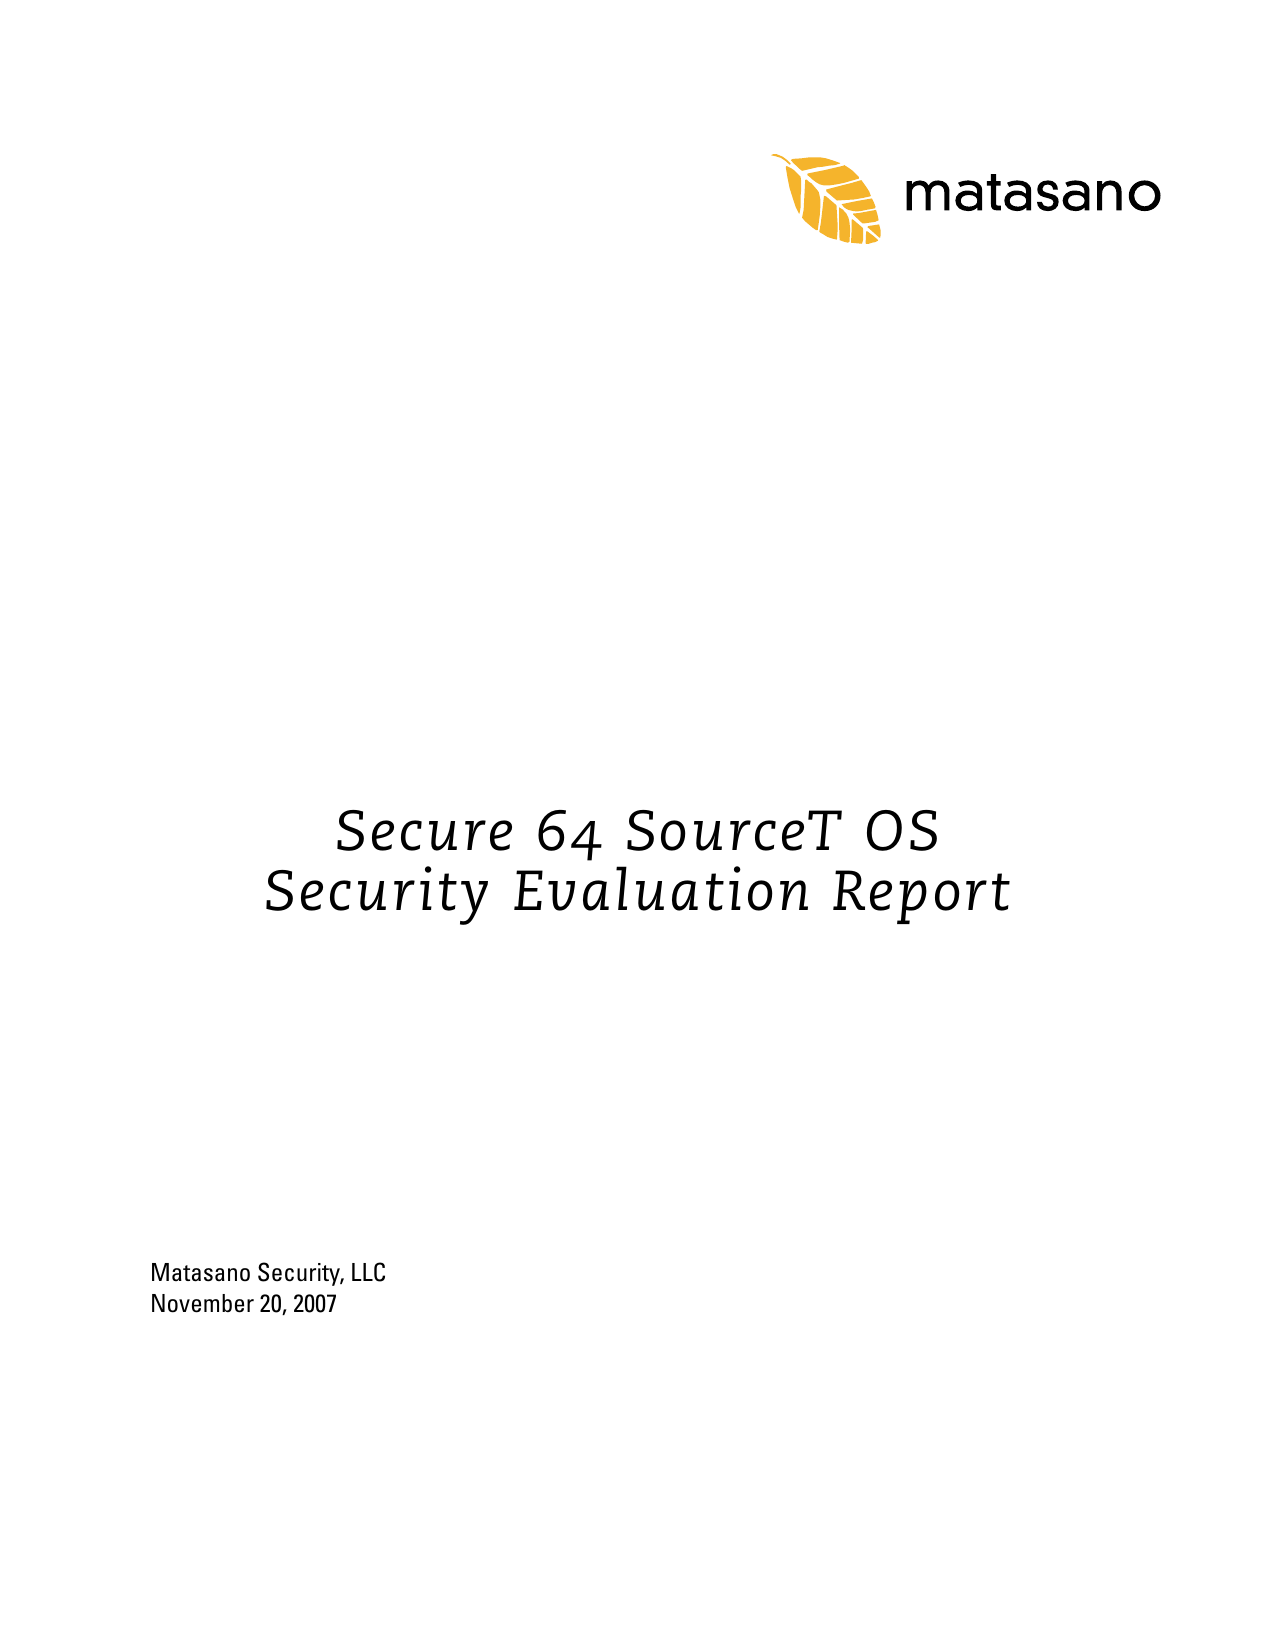 First page of the 'Matasano SourceT Security Evaluation Report' PDF